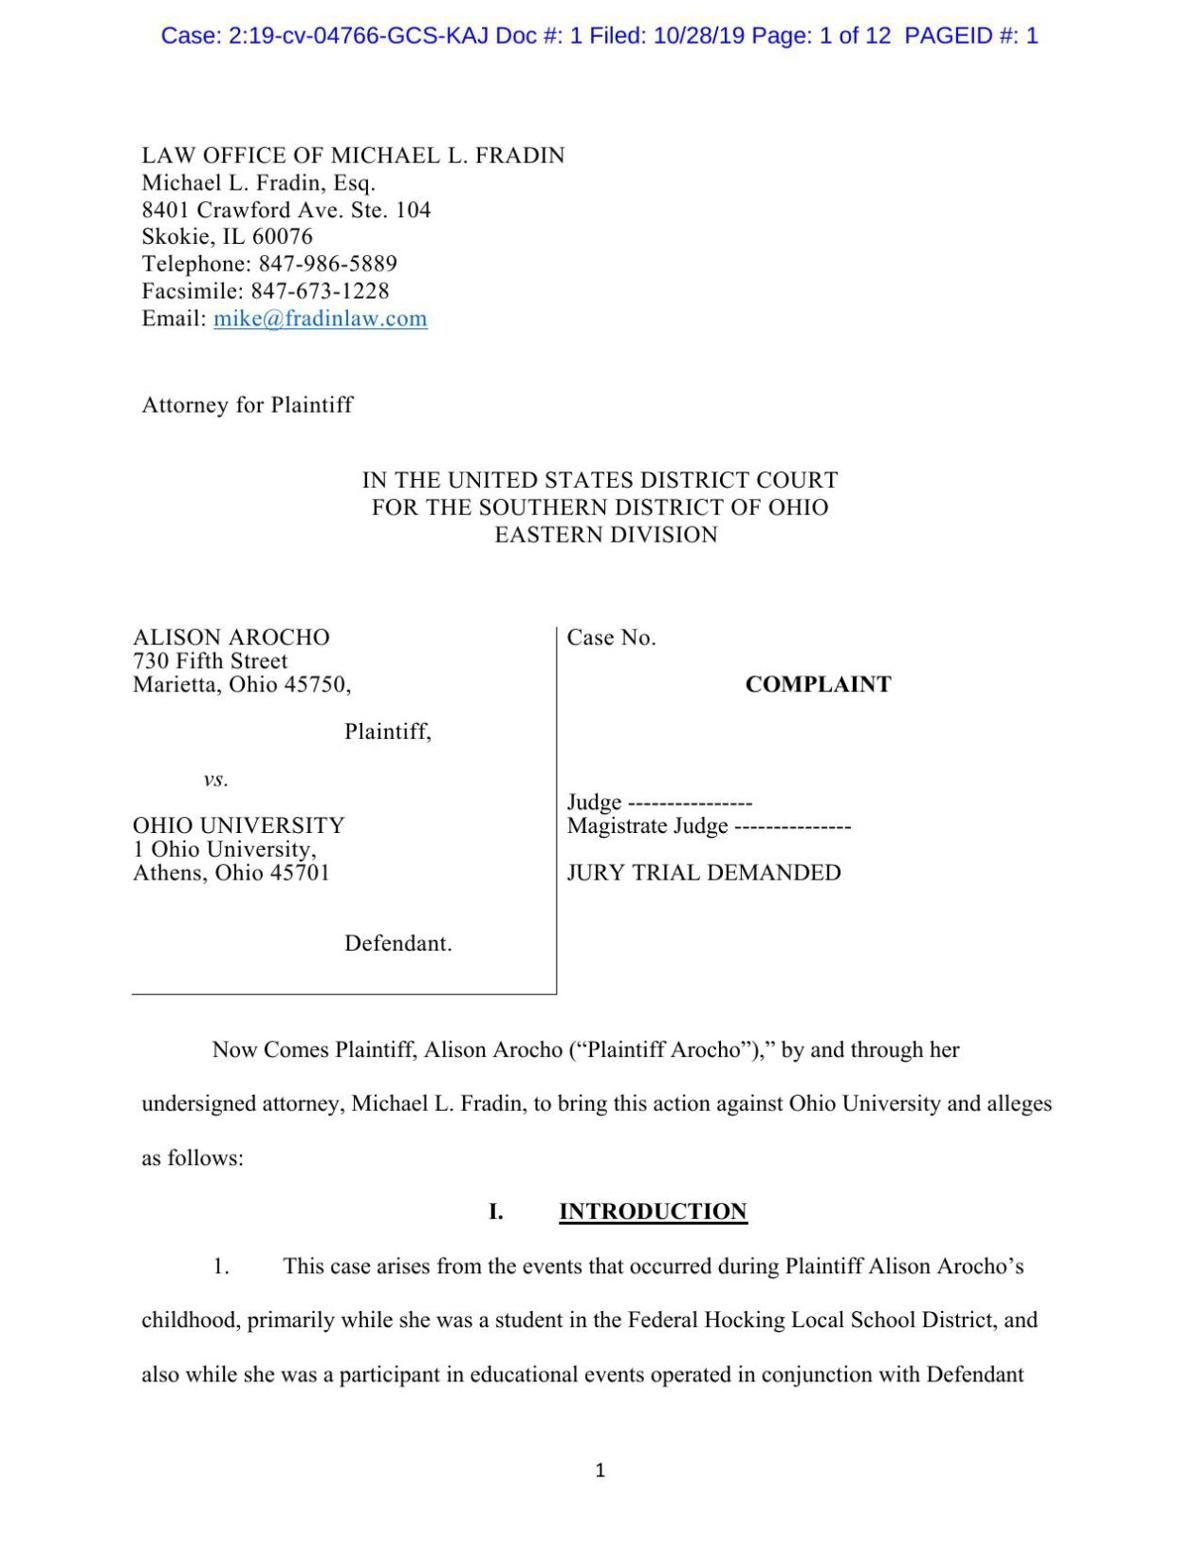 Complaint filed in federal court